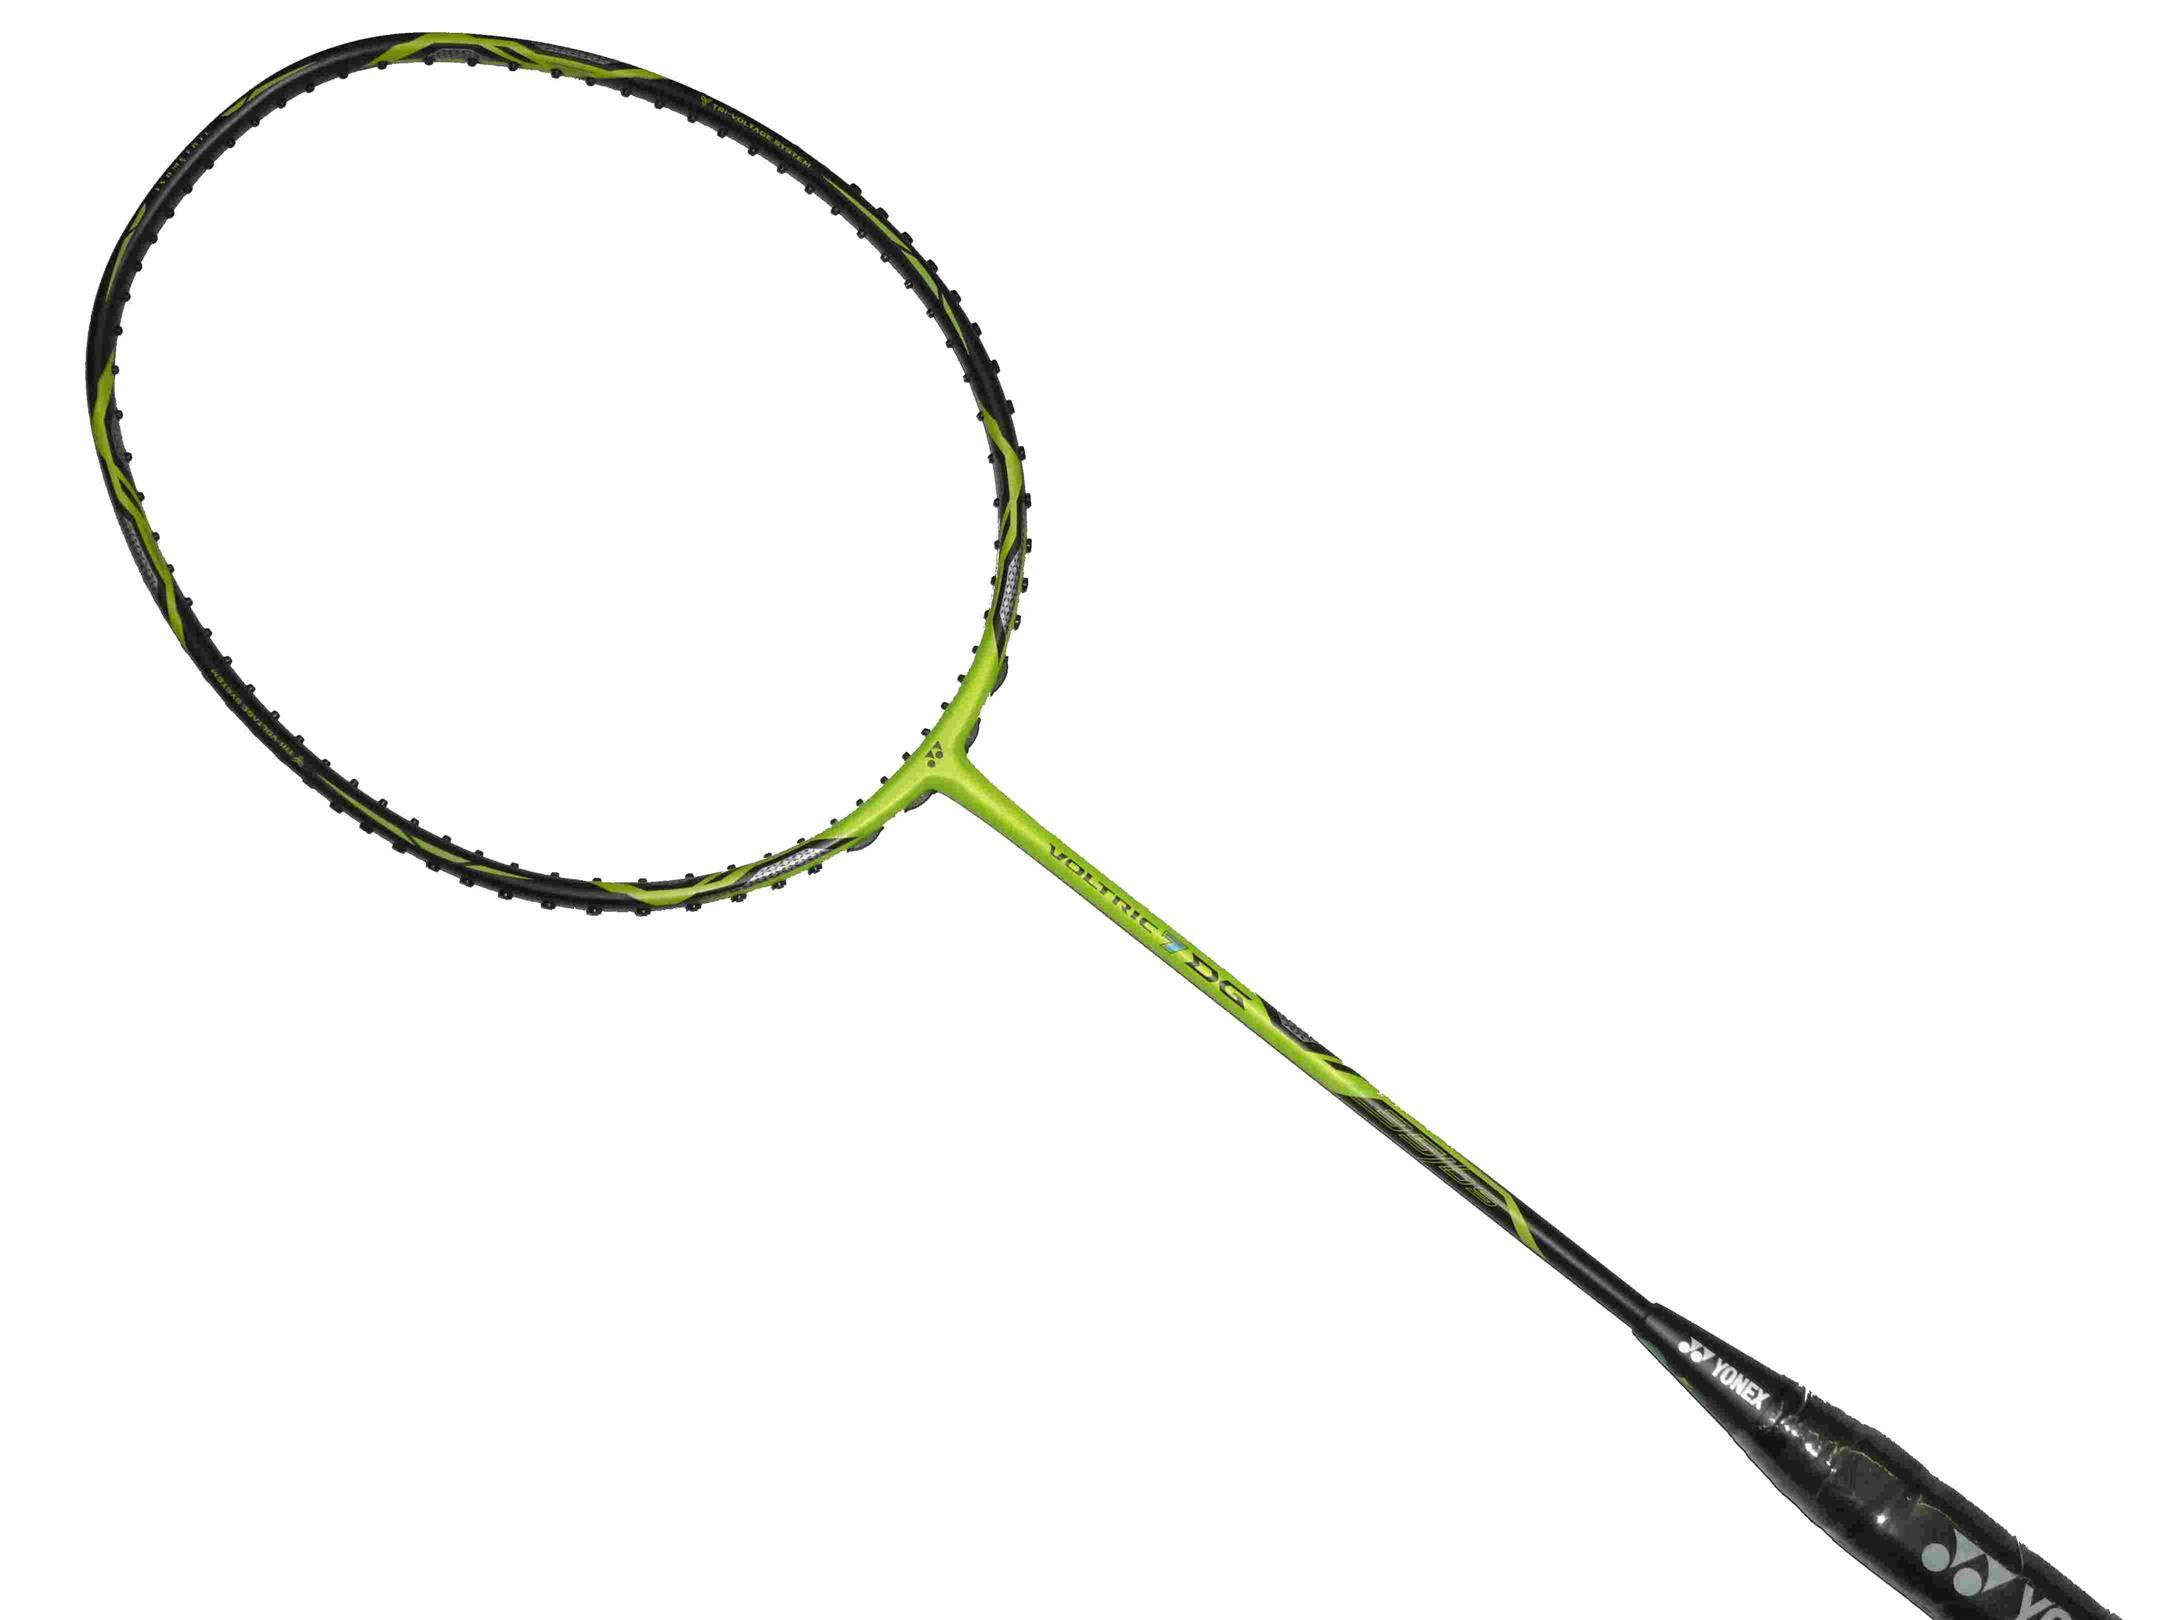 Yonex Voltric 7 DG Badminton Racket FREE Made-in Japan String and Grip